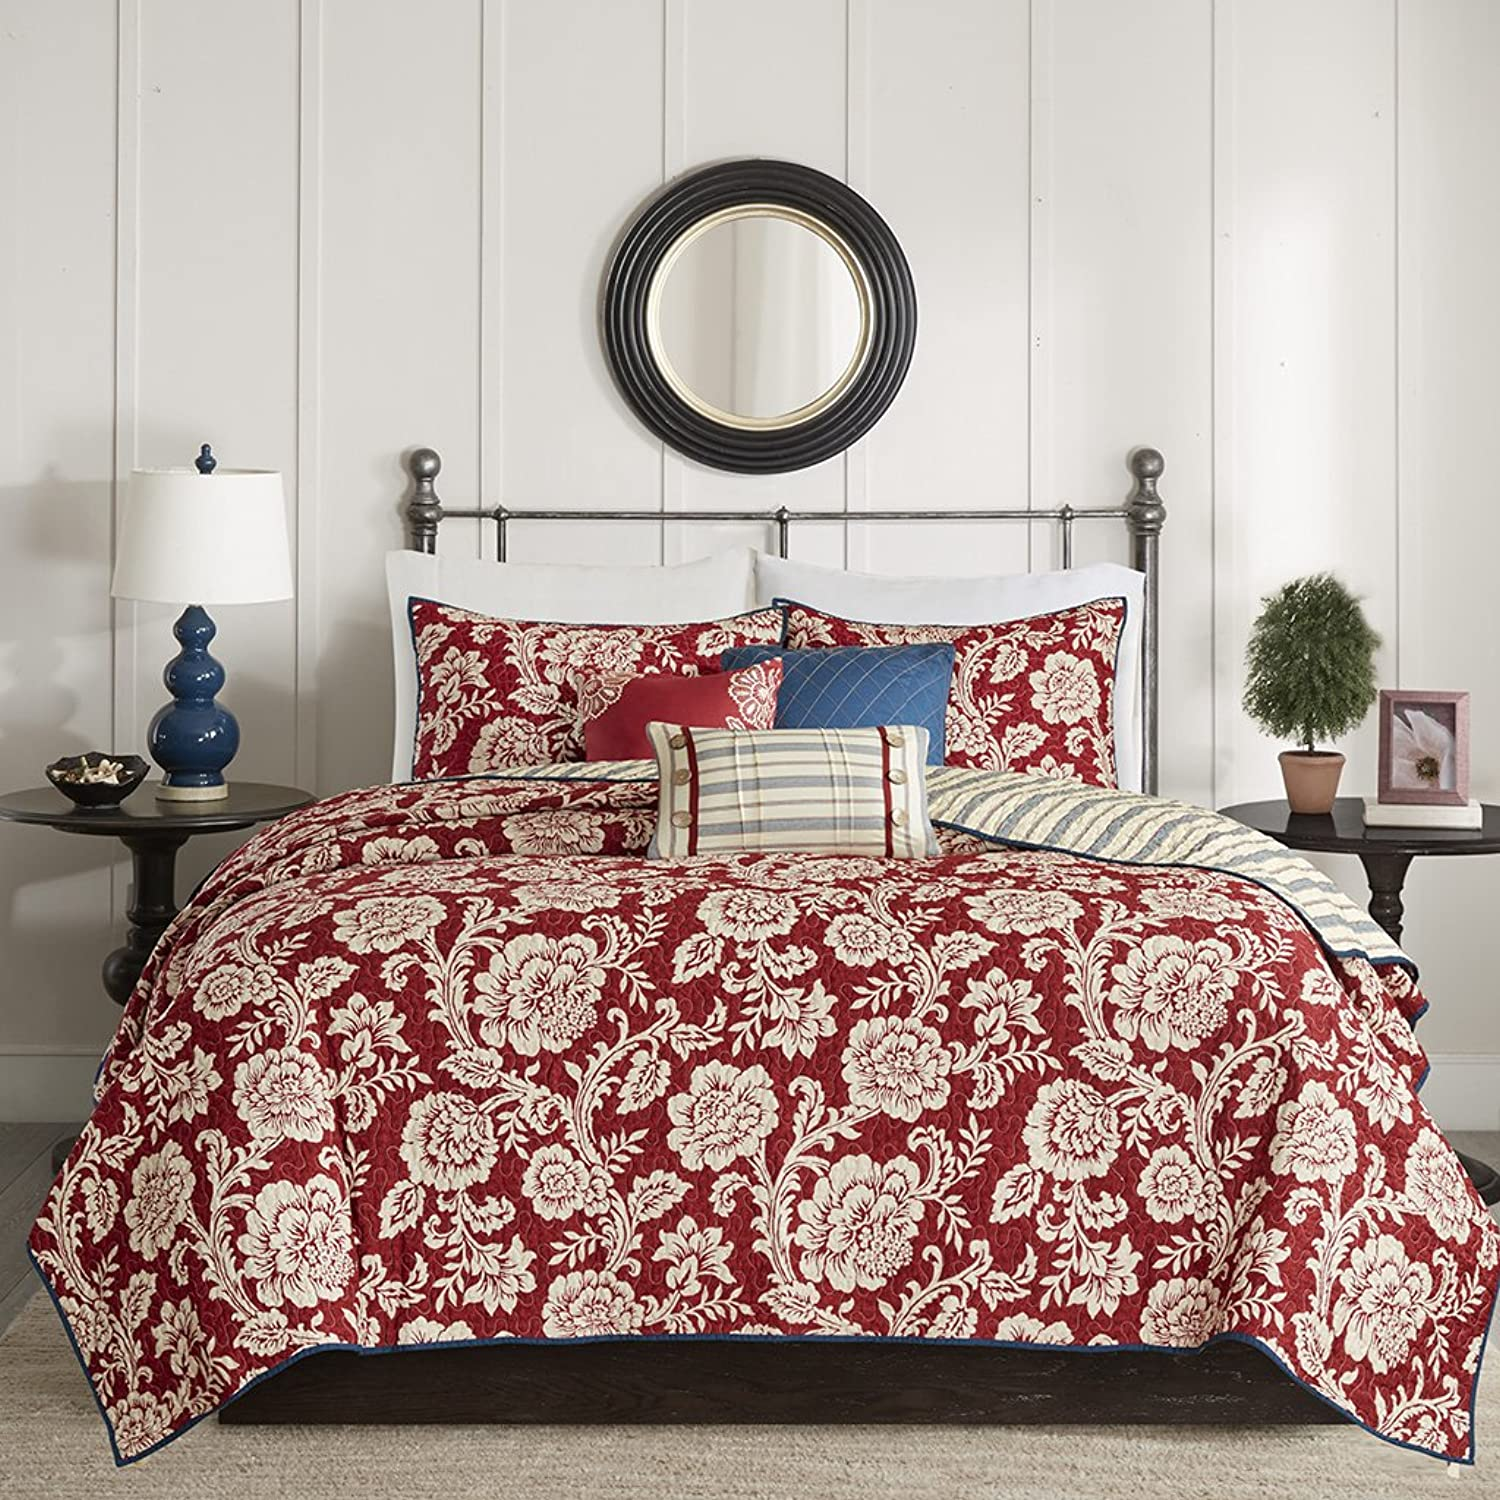 Madison Park Lucy King Cal King Size Quilt Bedding Set - Red, Navy , Reversible Floral, Stripes – 6 Piece Bedding Quilt Coverlets – Cotton Twill, Cotton Poly Blend Reverse Bed Quilts Quilted Coverlet